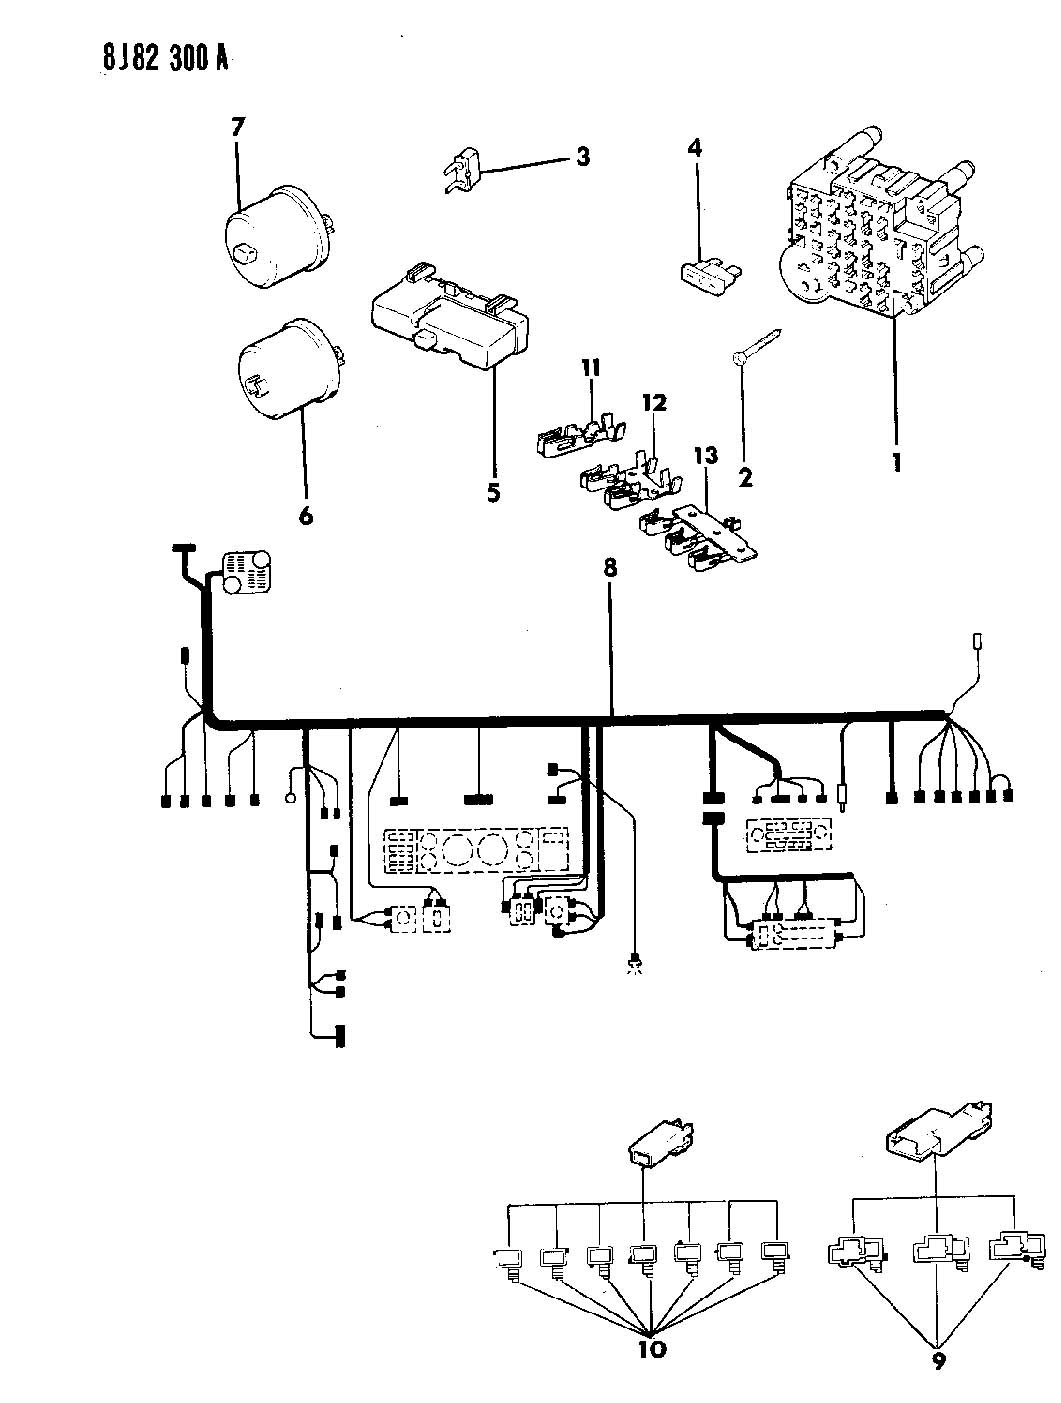 C92c6a 1999 Jeep Wrangler Gauges Wiring Diagram Wiring Library